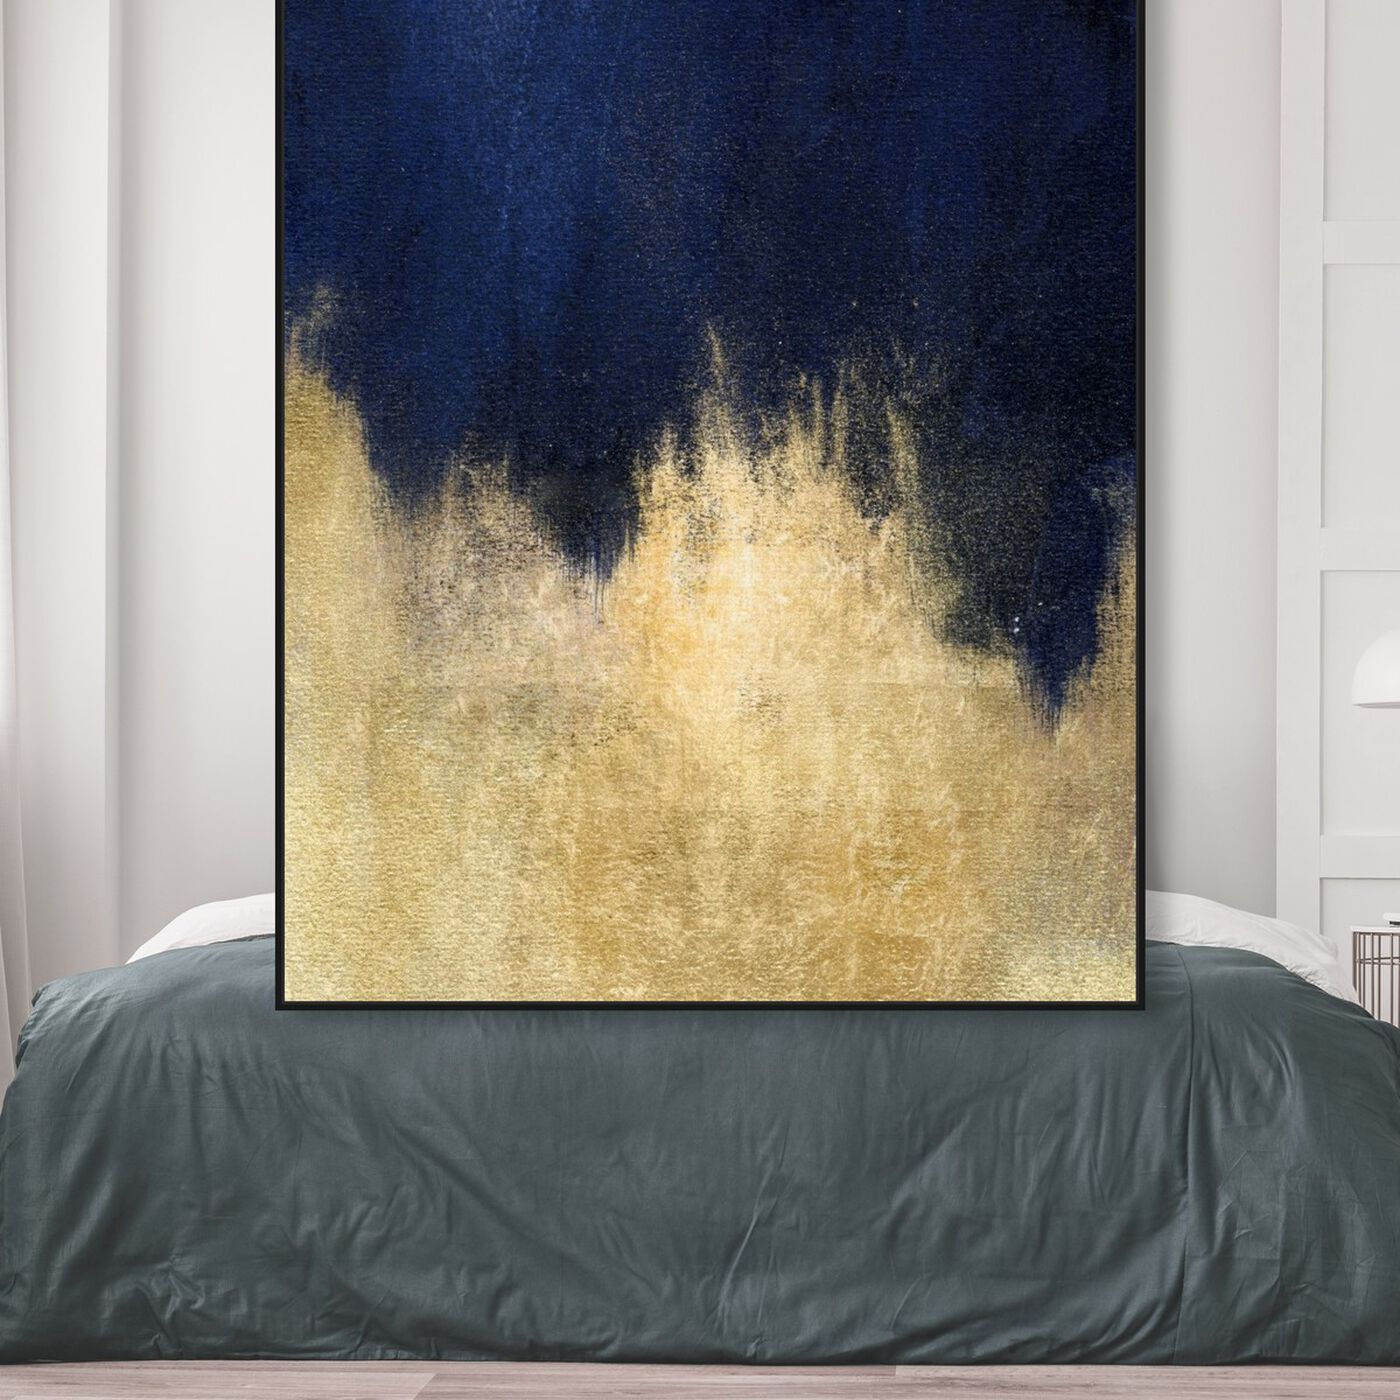 Hanging view of Stars at Midnight featuring abstract and paint art.